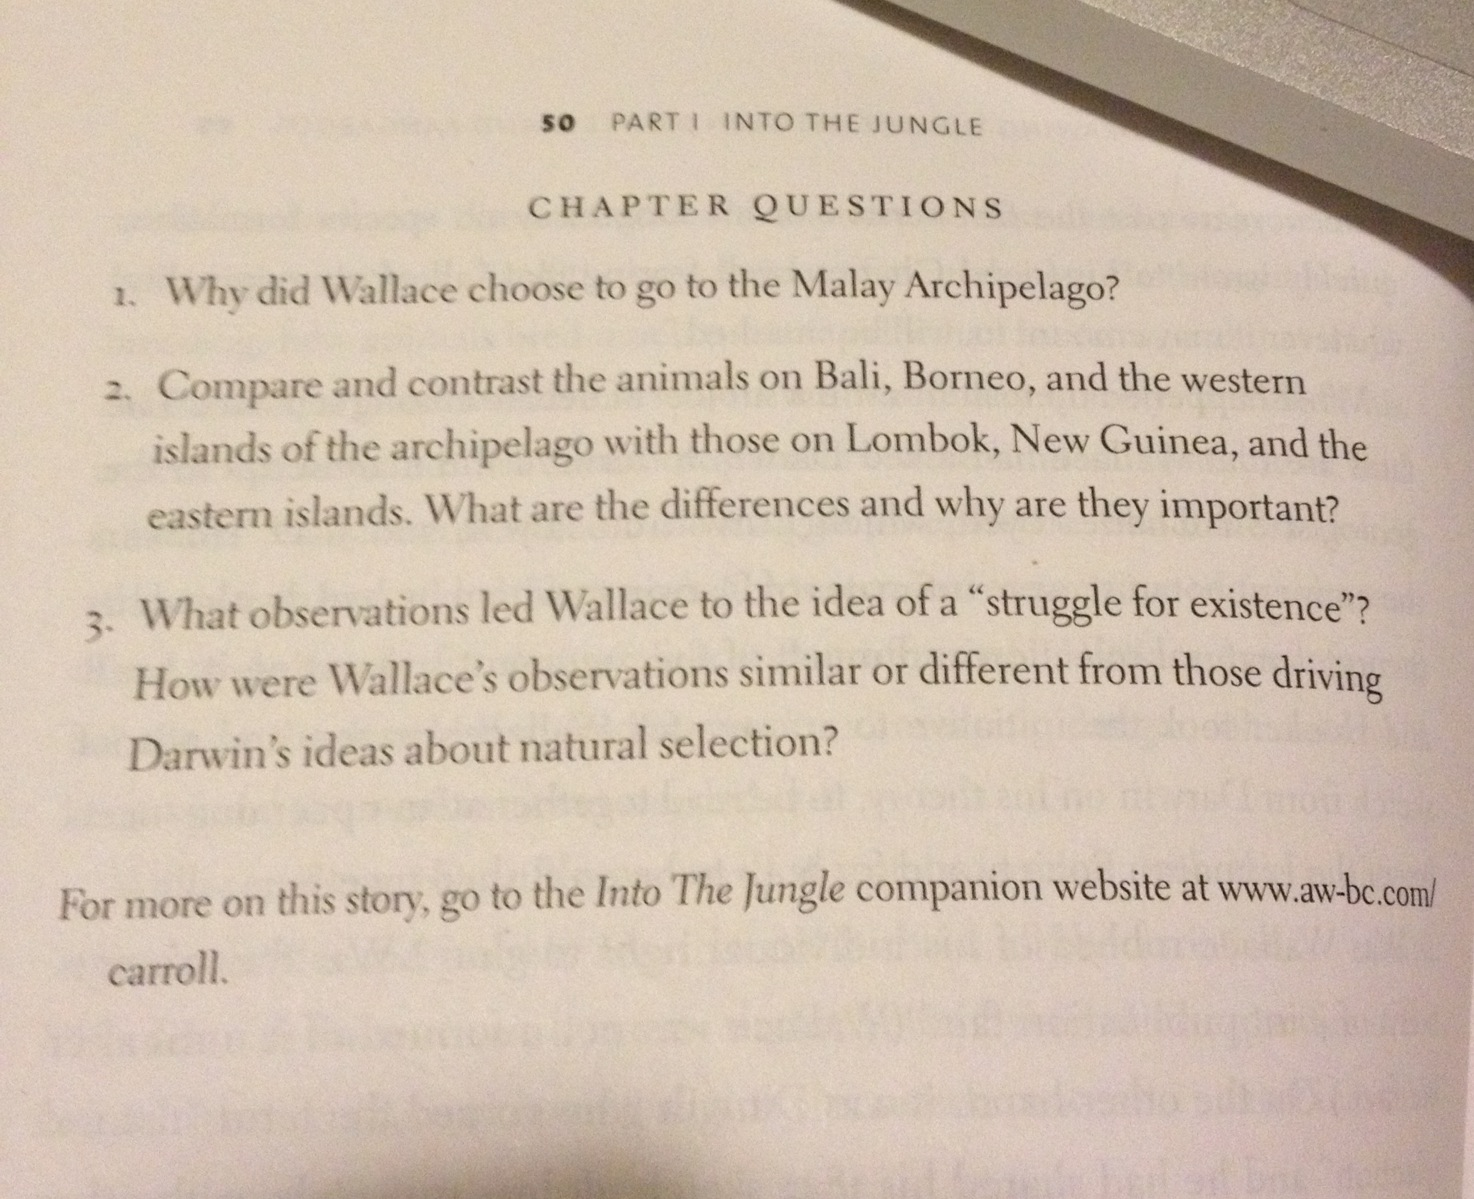 Why did Wallace choose to go to the Malay Archipel